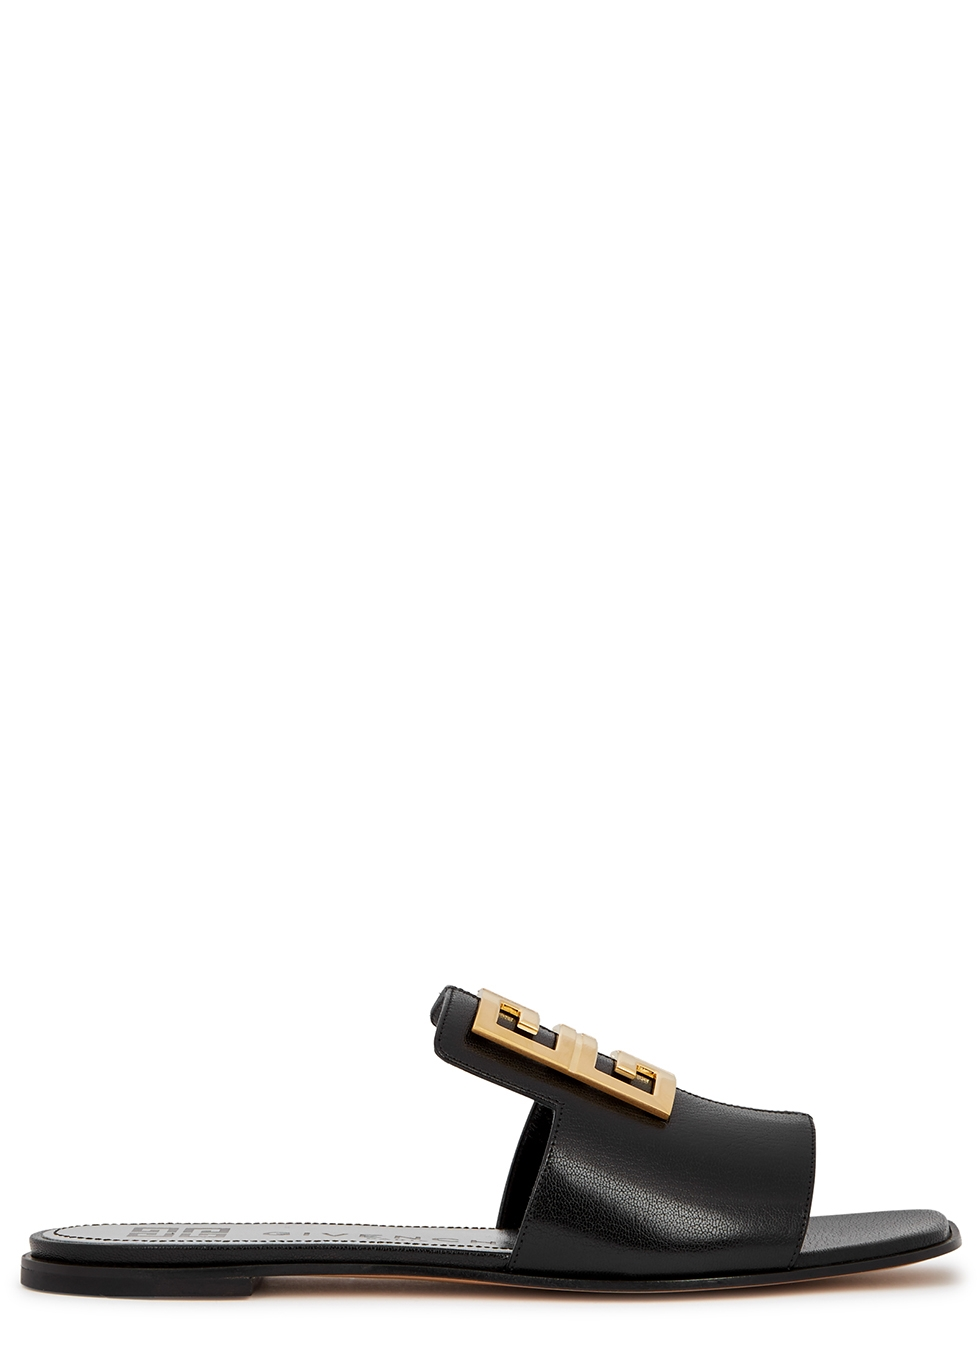 GIVENCHY | Givenchy 4G Black Leather Mules | Goxip